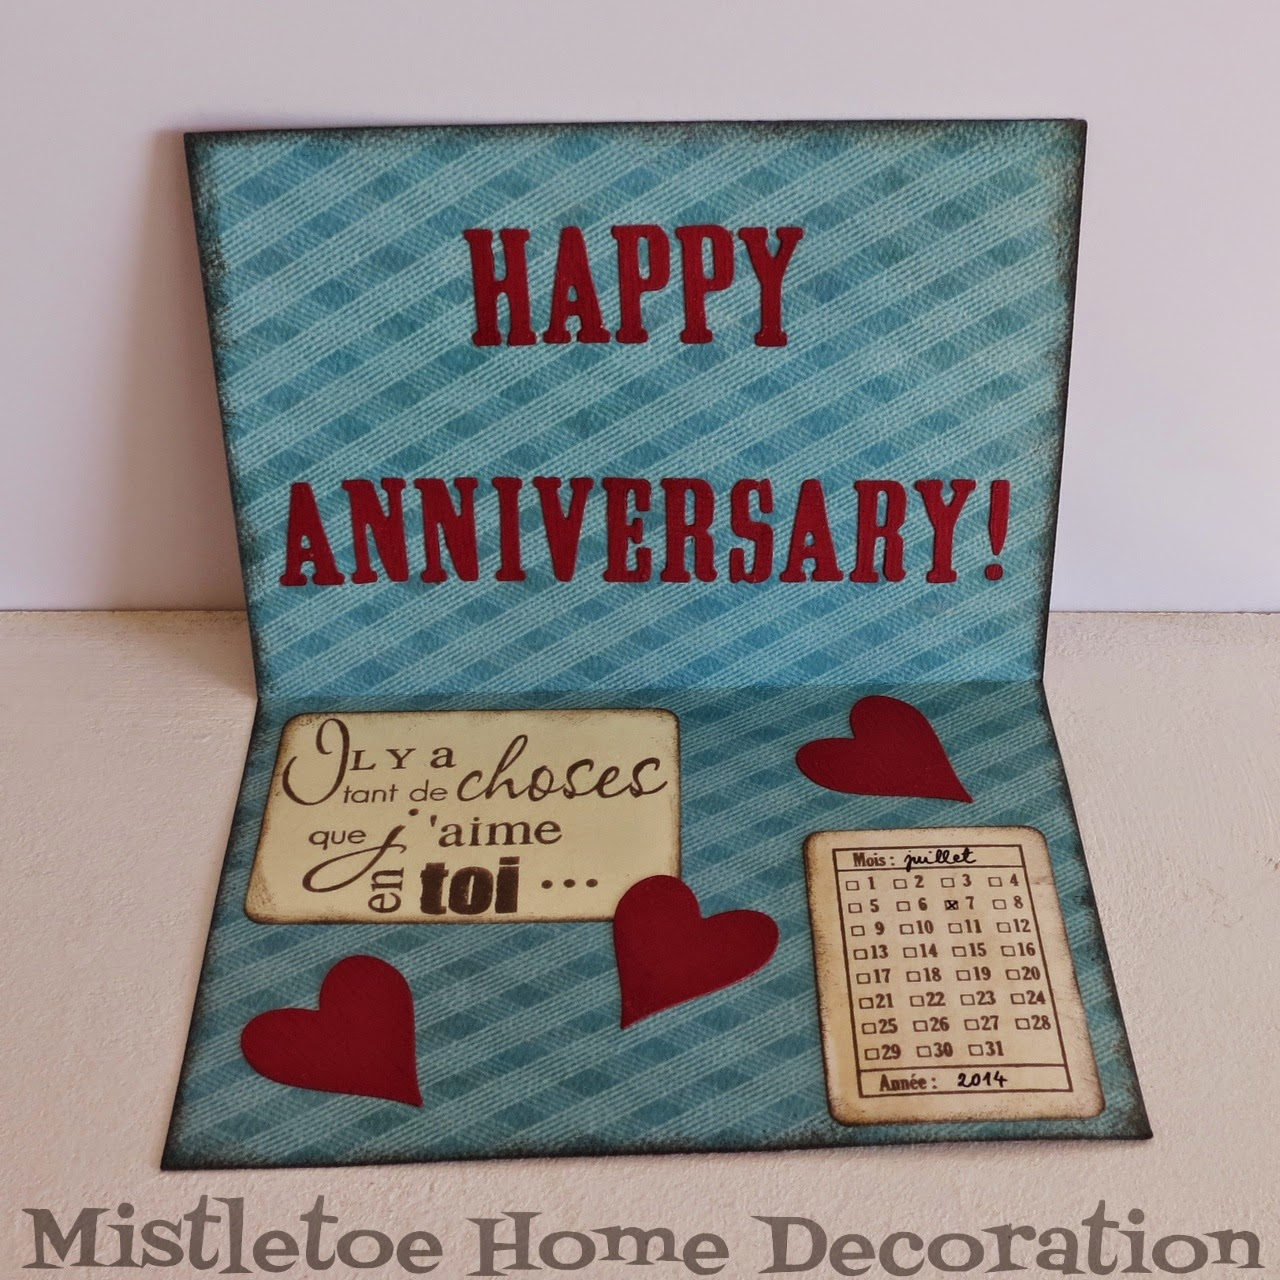 Mistletoe home decoration diy wedding anniversary card for Anniversary decoration at home